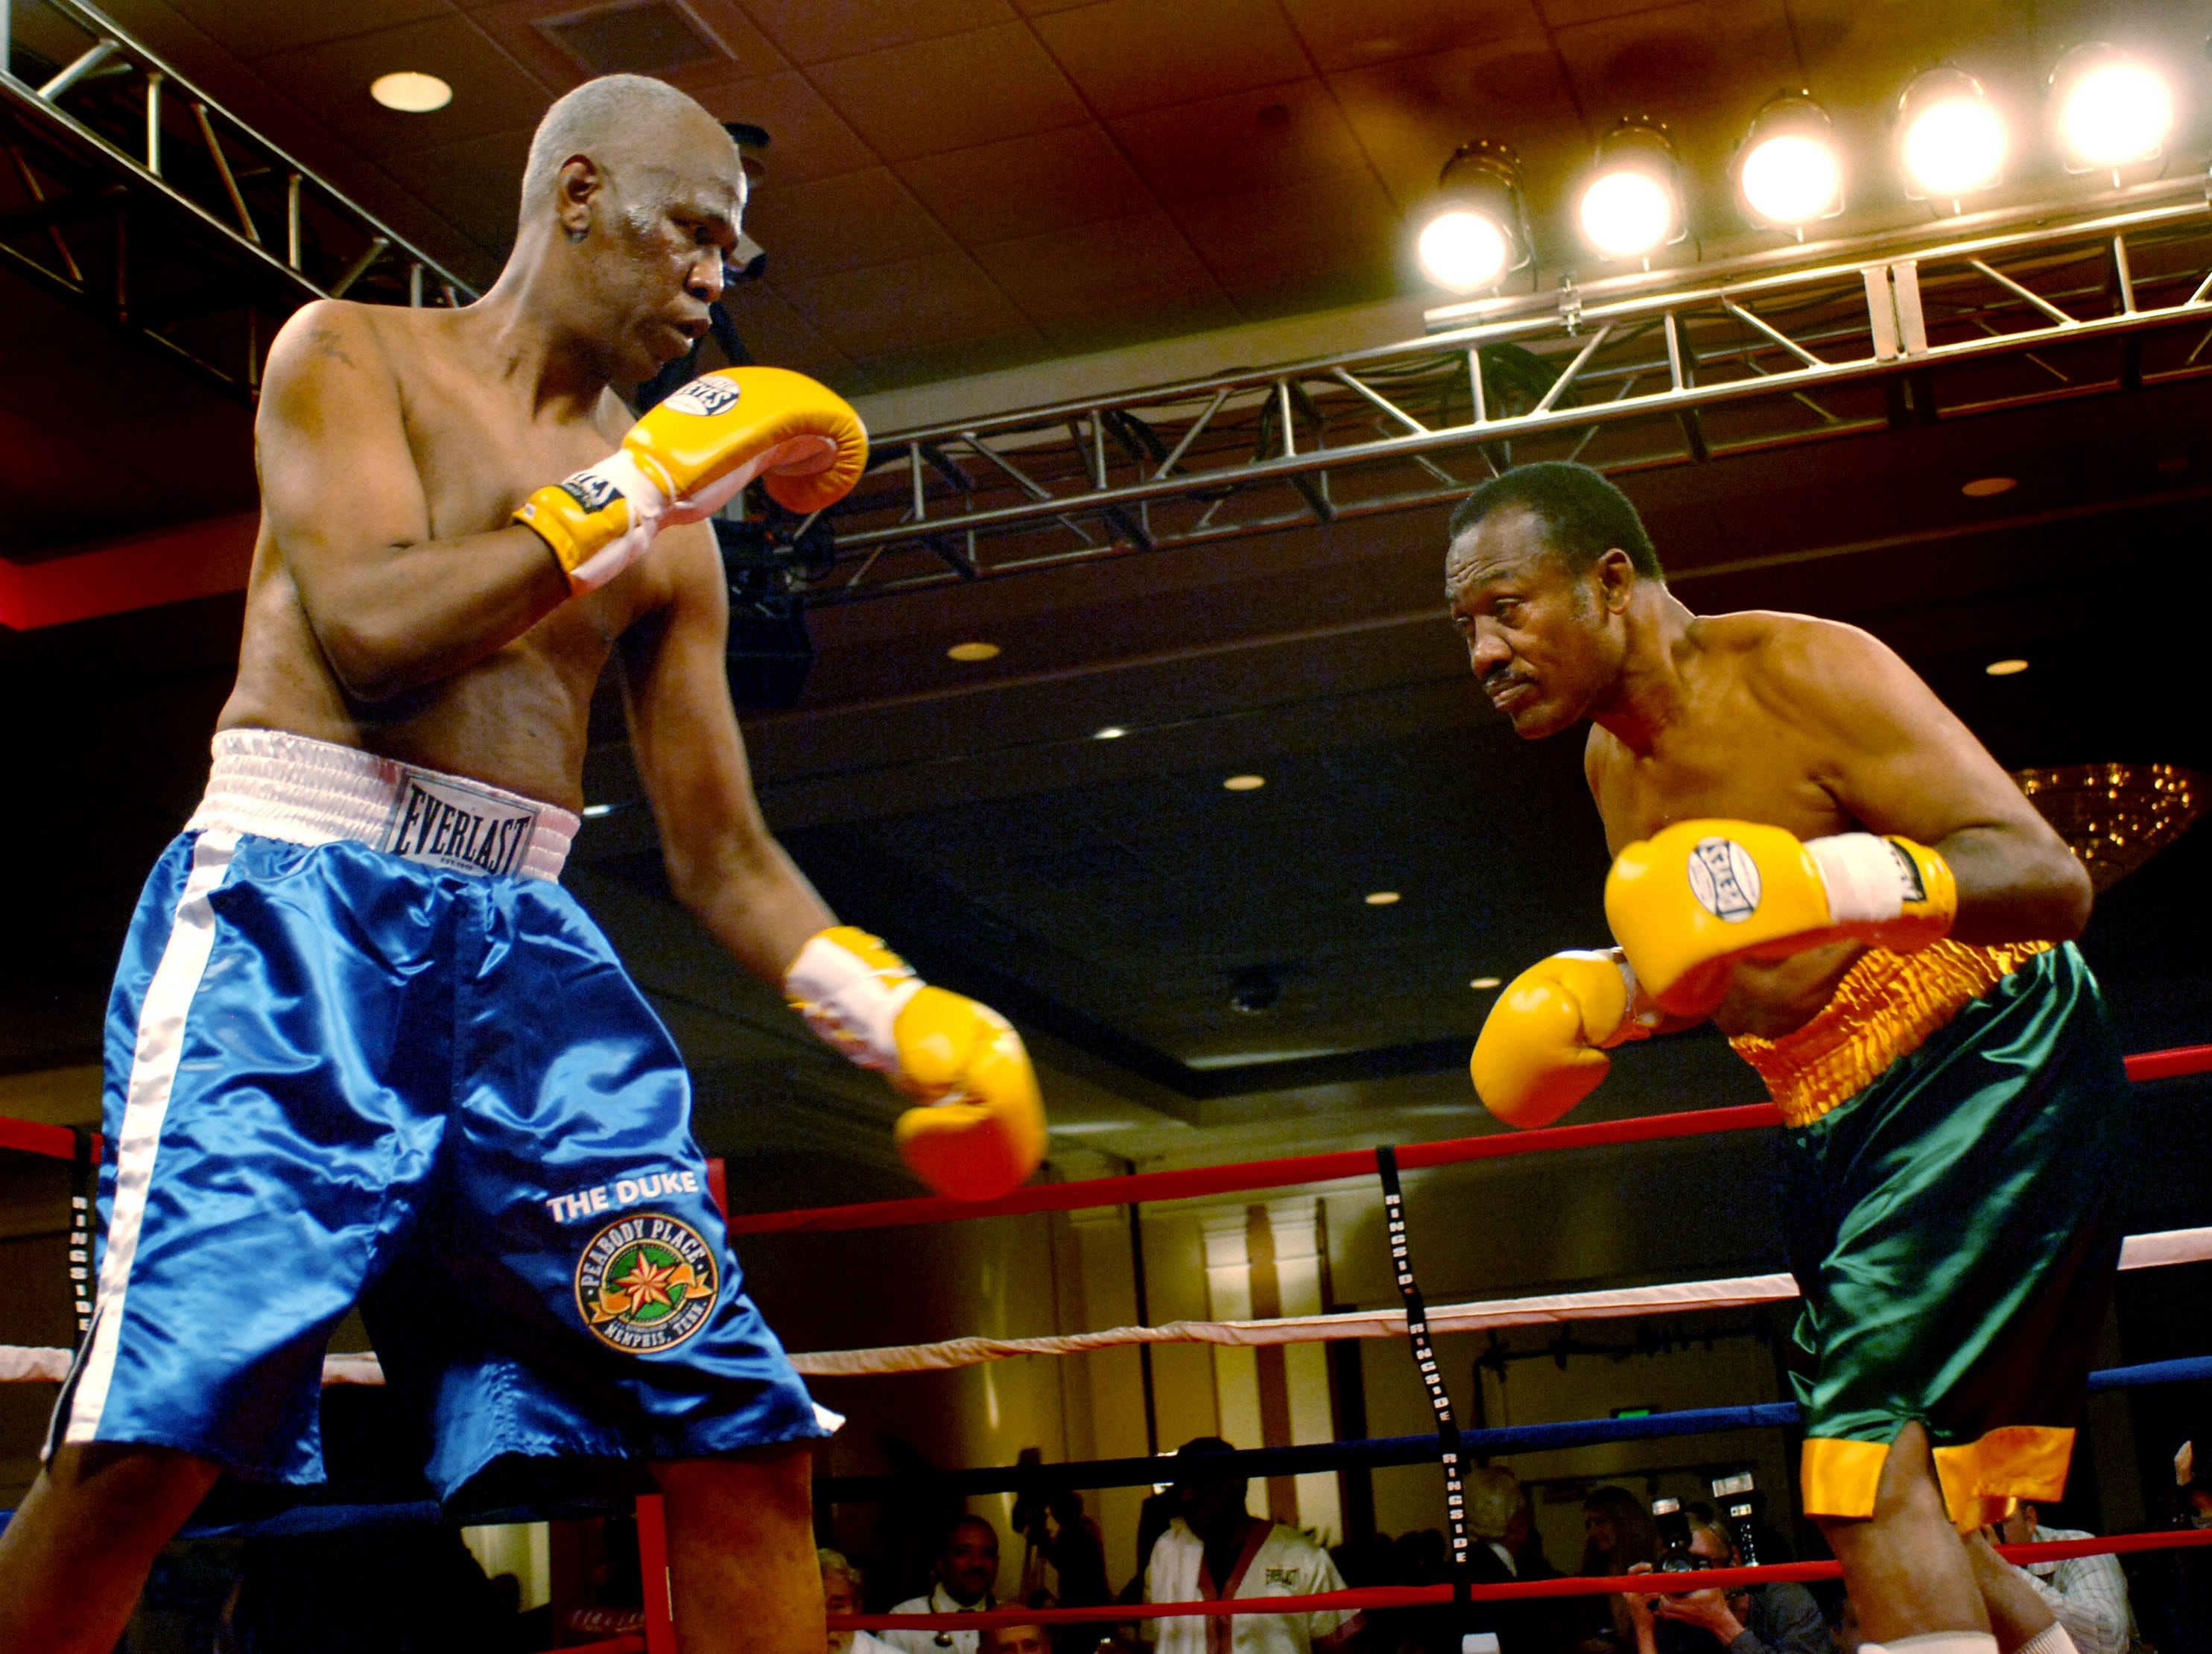 Memphis Mayor Willie Herenton, left, reaches in to former heavyweight champion Joe Frazier, right, during their charity bout at the Peabody Hotel on Nov. 30, 2006. Neither boxer landed any punches in the three-one minute rounds.